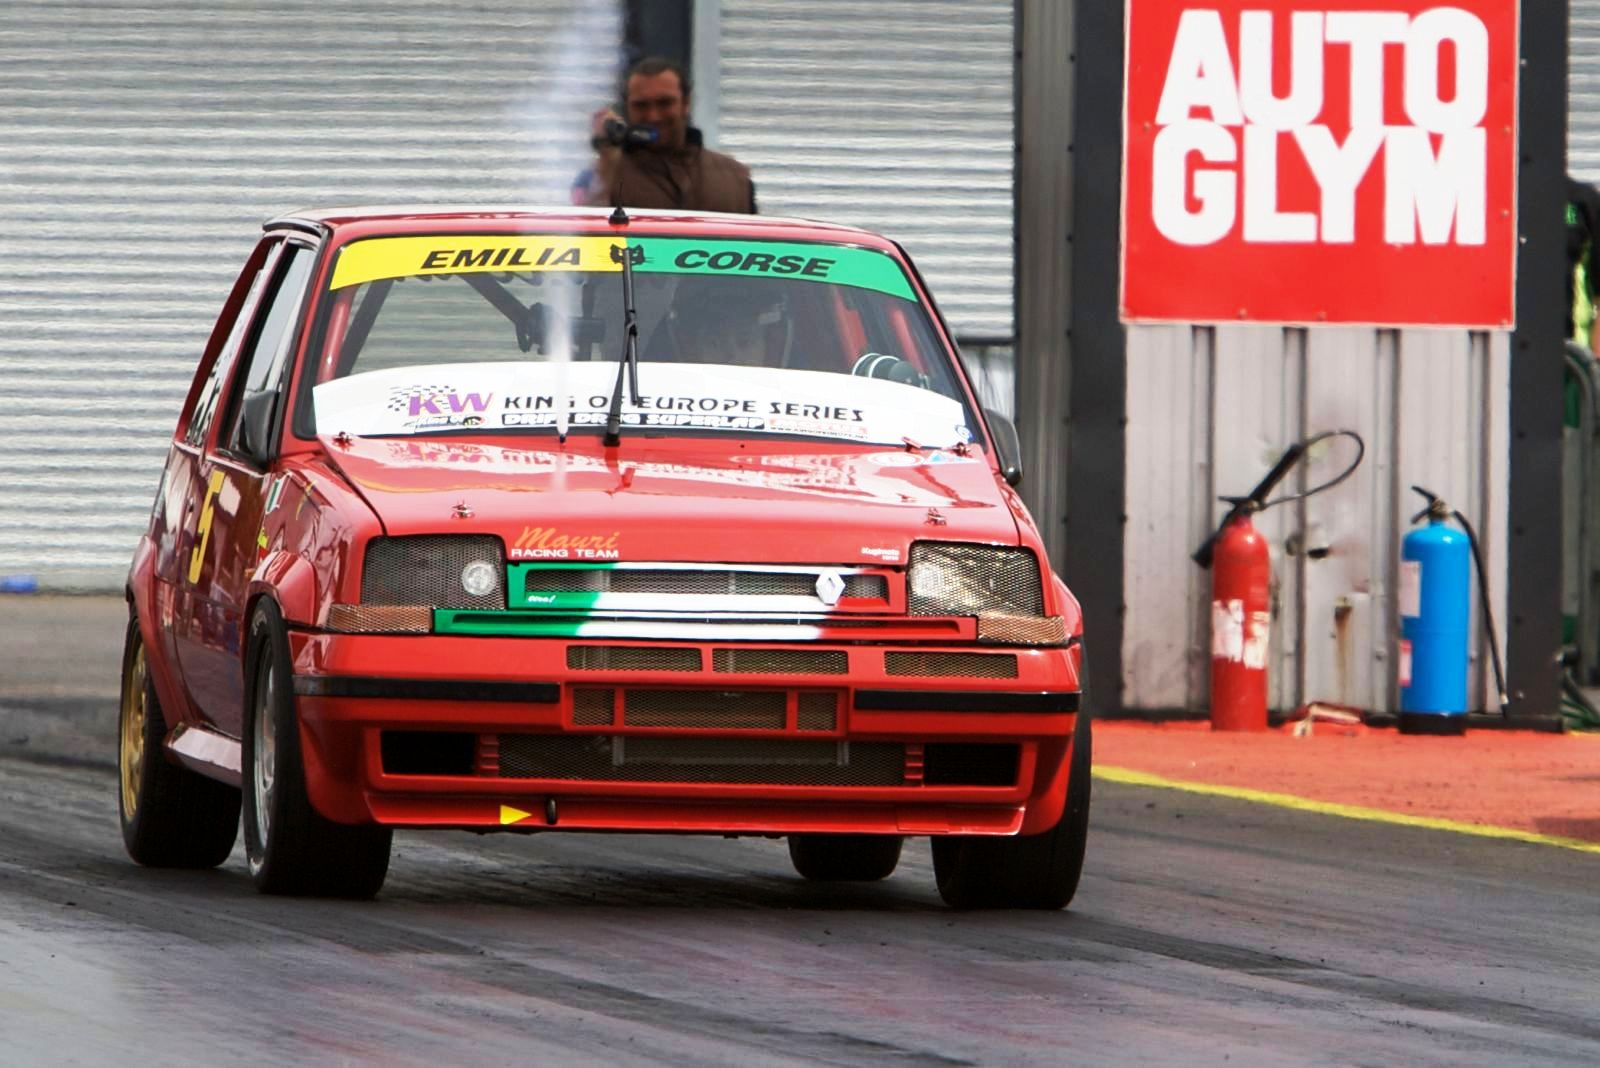 1990 Renault Clio Super 5 GT TURBO